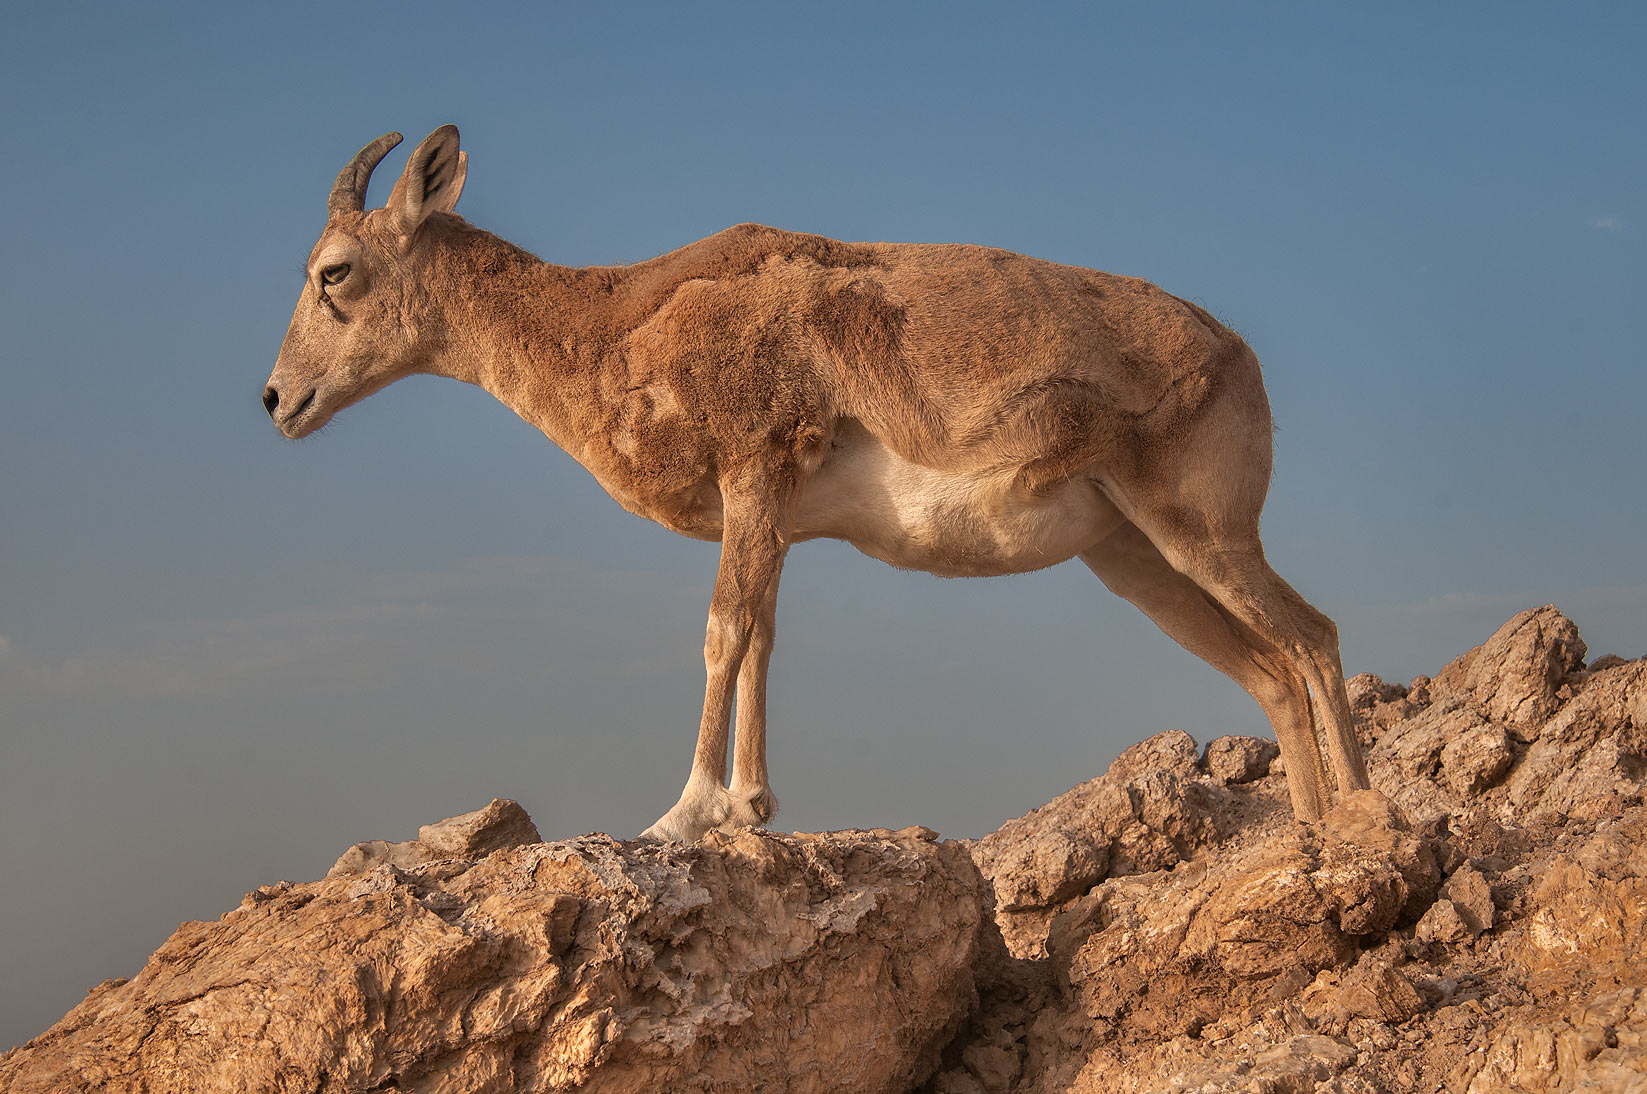 Mountain goat standing on gypsum rocks of...Haloul Island (Jazirat Halul). Qatar